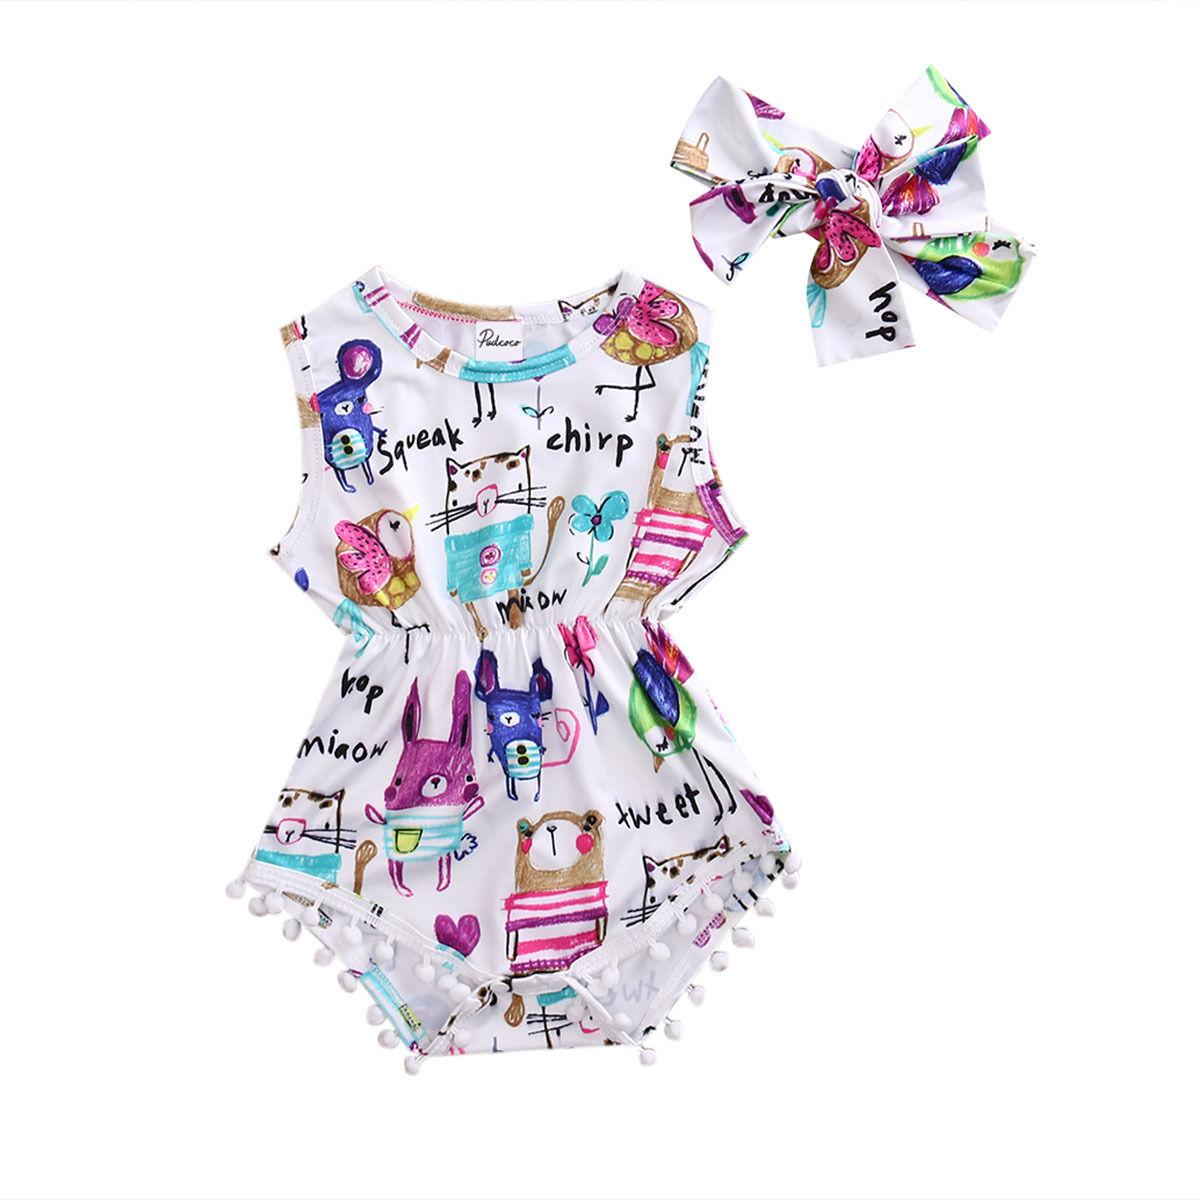 e9226b60fa9ad Infant Baby Girls Cotton Sleeveless Tassel Painting Romper+Bow Headband  Jumpsuit Outfit Sunsuit Clothes